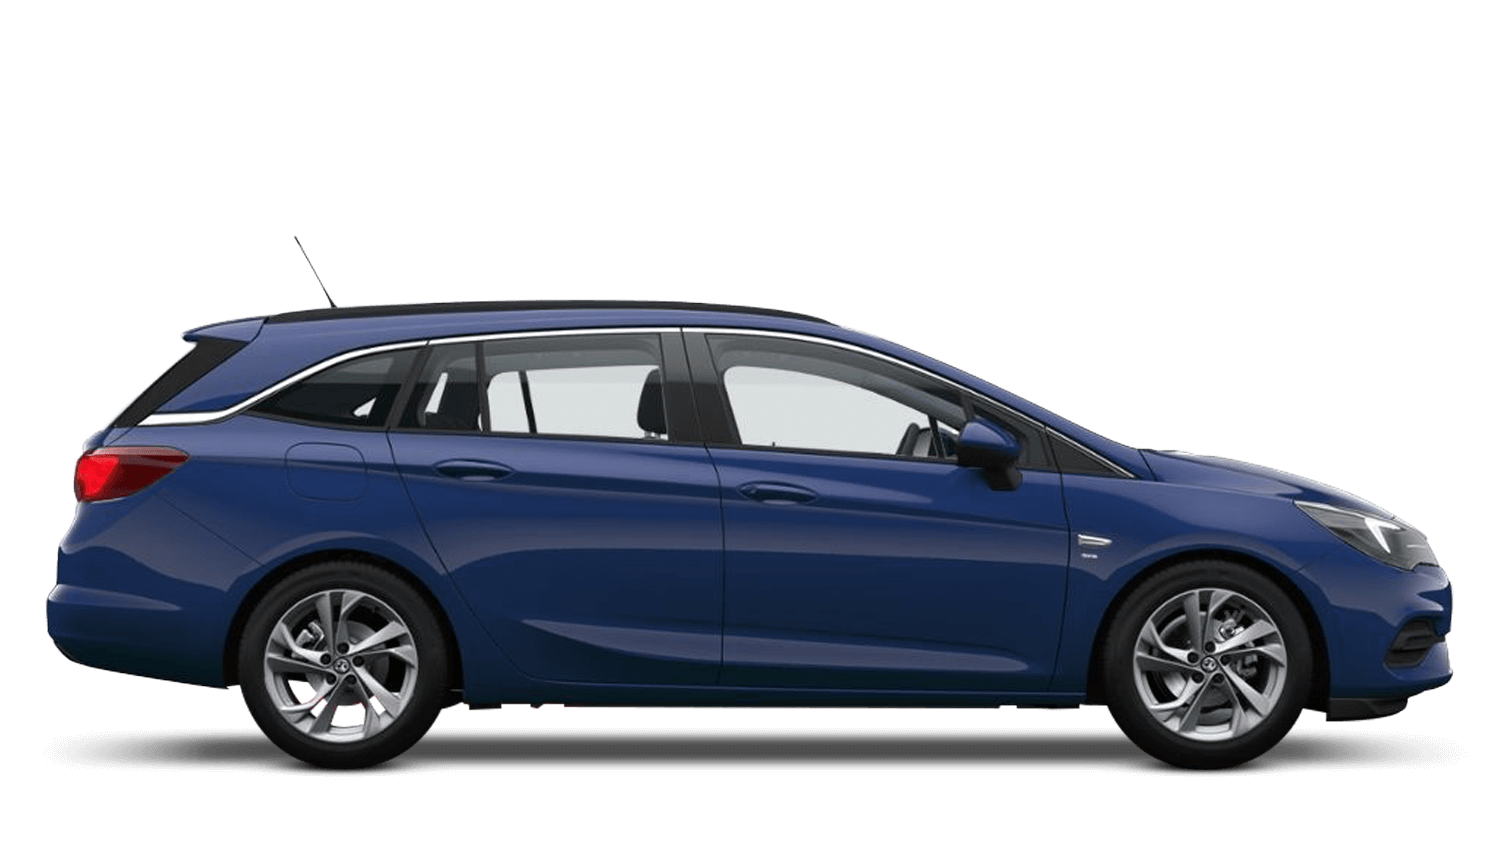 Aegean Blue (Solid) Vauxhall Astra Sports Tourer New